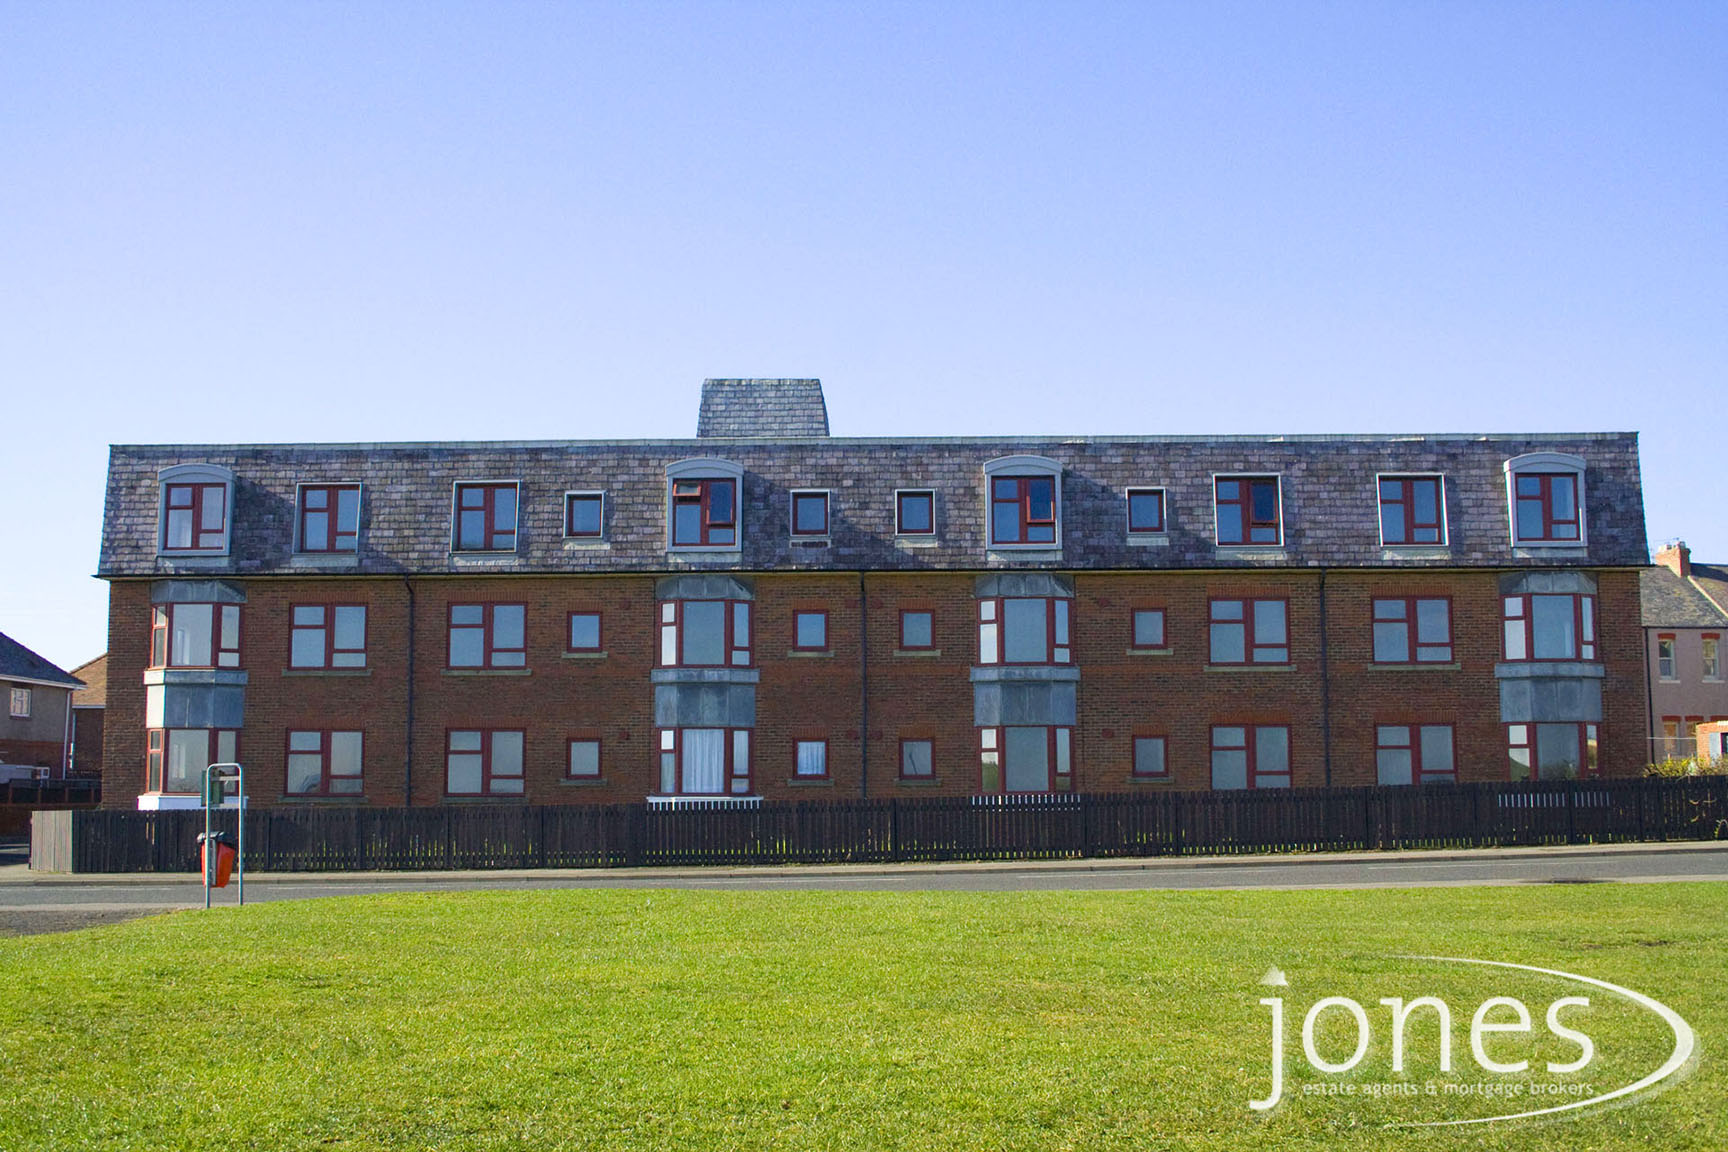 Home for Sale Let - Photo 01 GALLEYSFIELDS COURT, The Headland ,Hartlepool, TS24 0NB